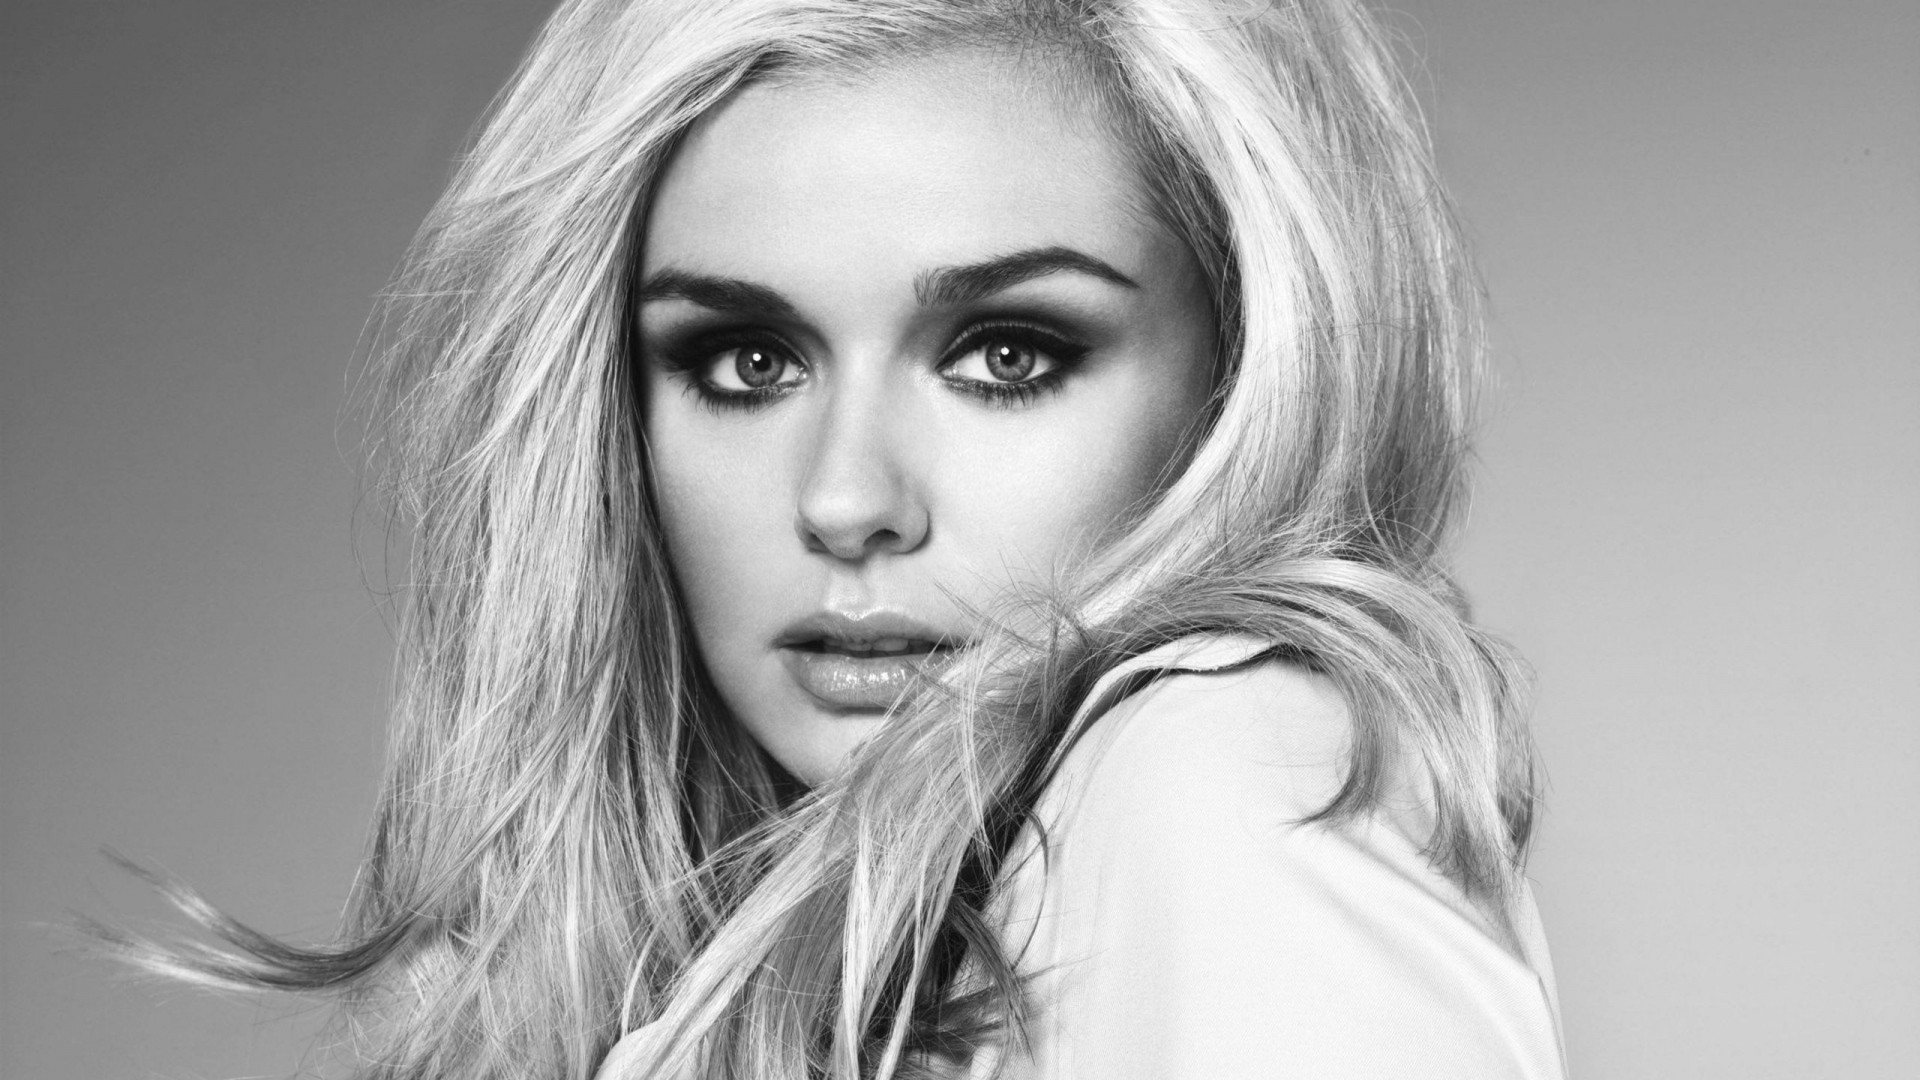 Res: 1920x1080, Download Wallpaper  katherine jenkins, view, actress, celebrity,  black and white Full HD 1080p HD Background